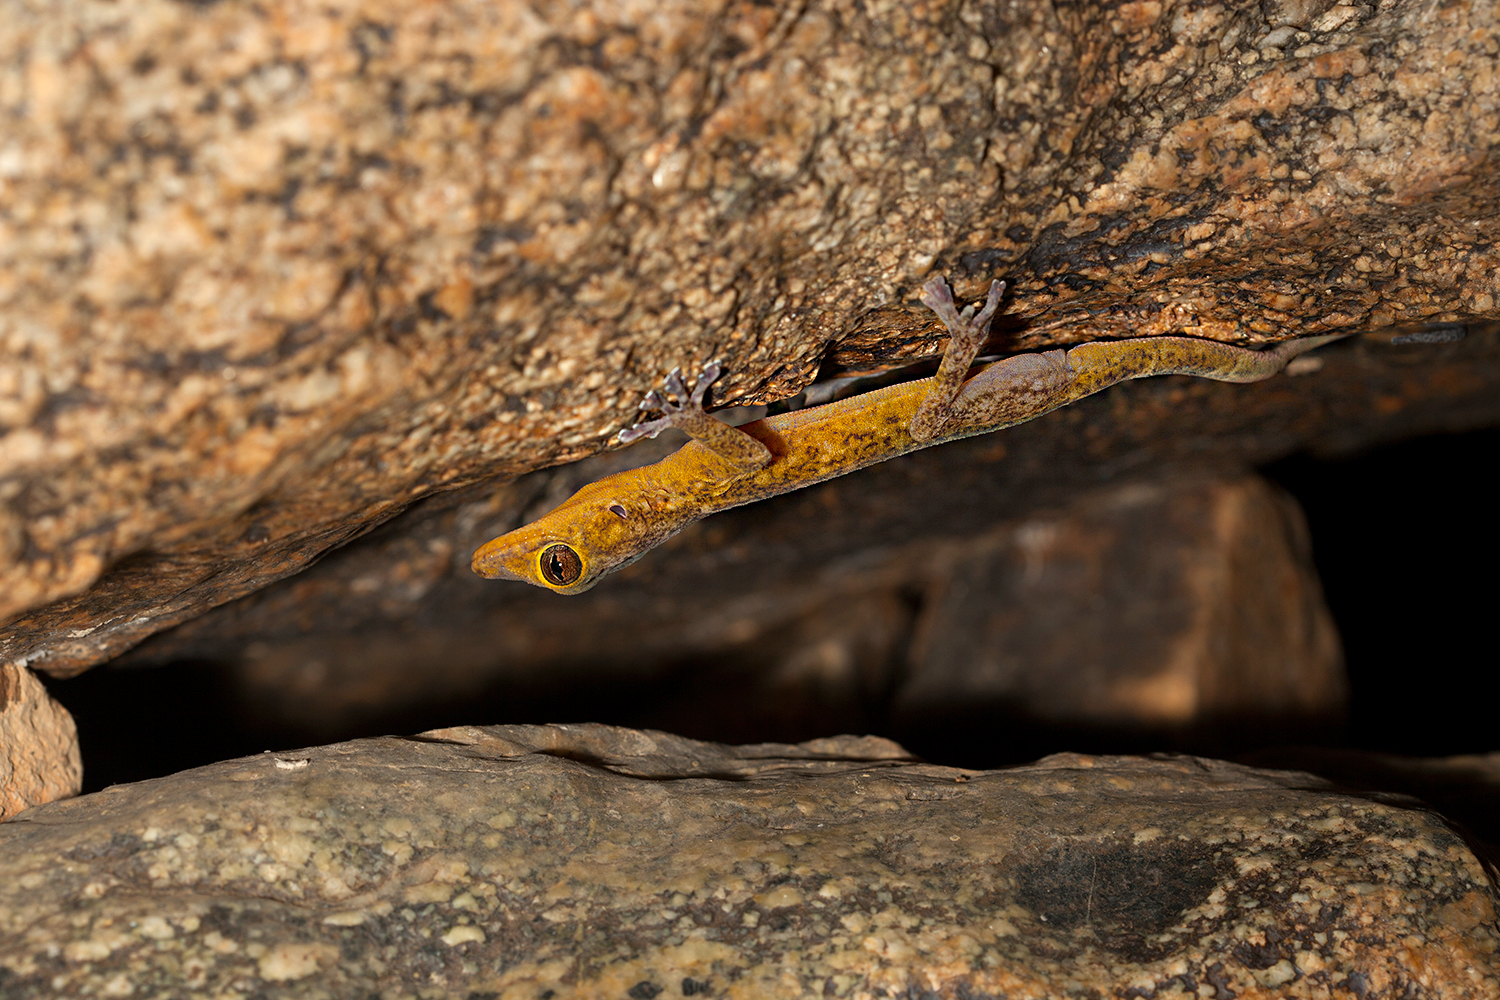 Golden geckos are adapted to living in rocky habitats and are often found in old ruins.  The golden gecko was re-discovered in India from the hills near Tirupathi. The males are known to turn golden yellow in the breeding season and hence the name 'golden gecko'.